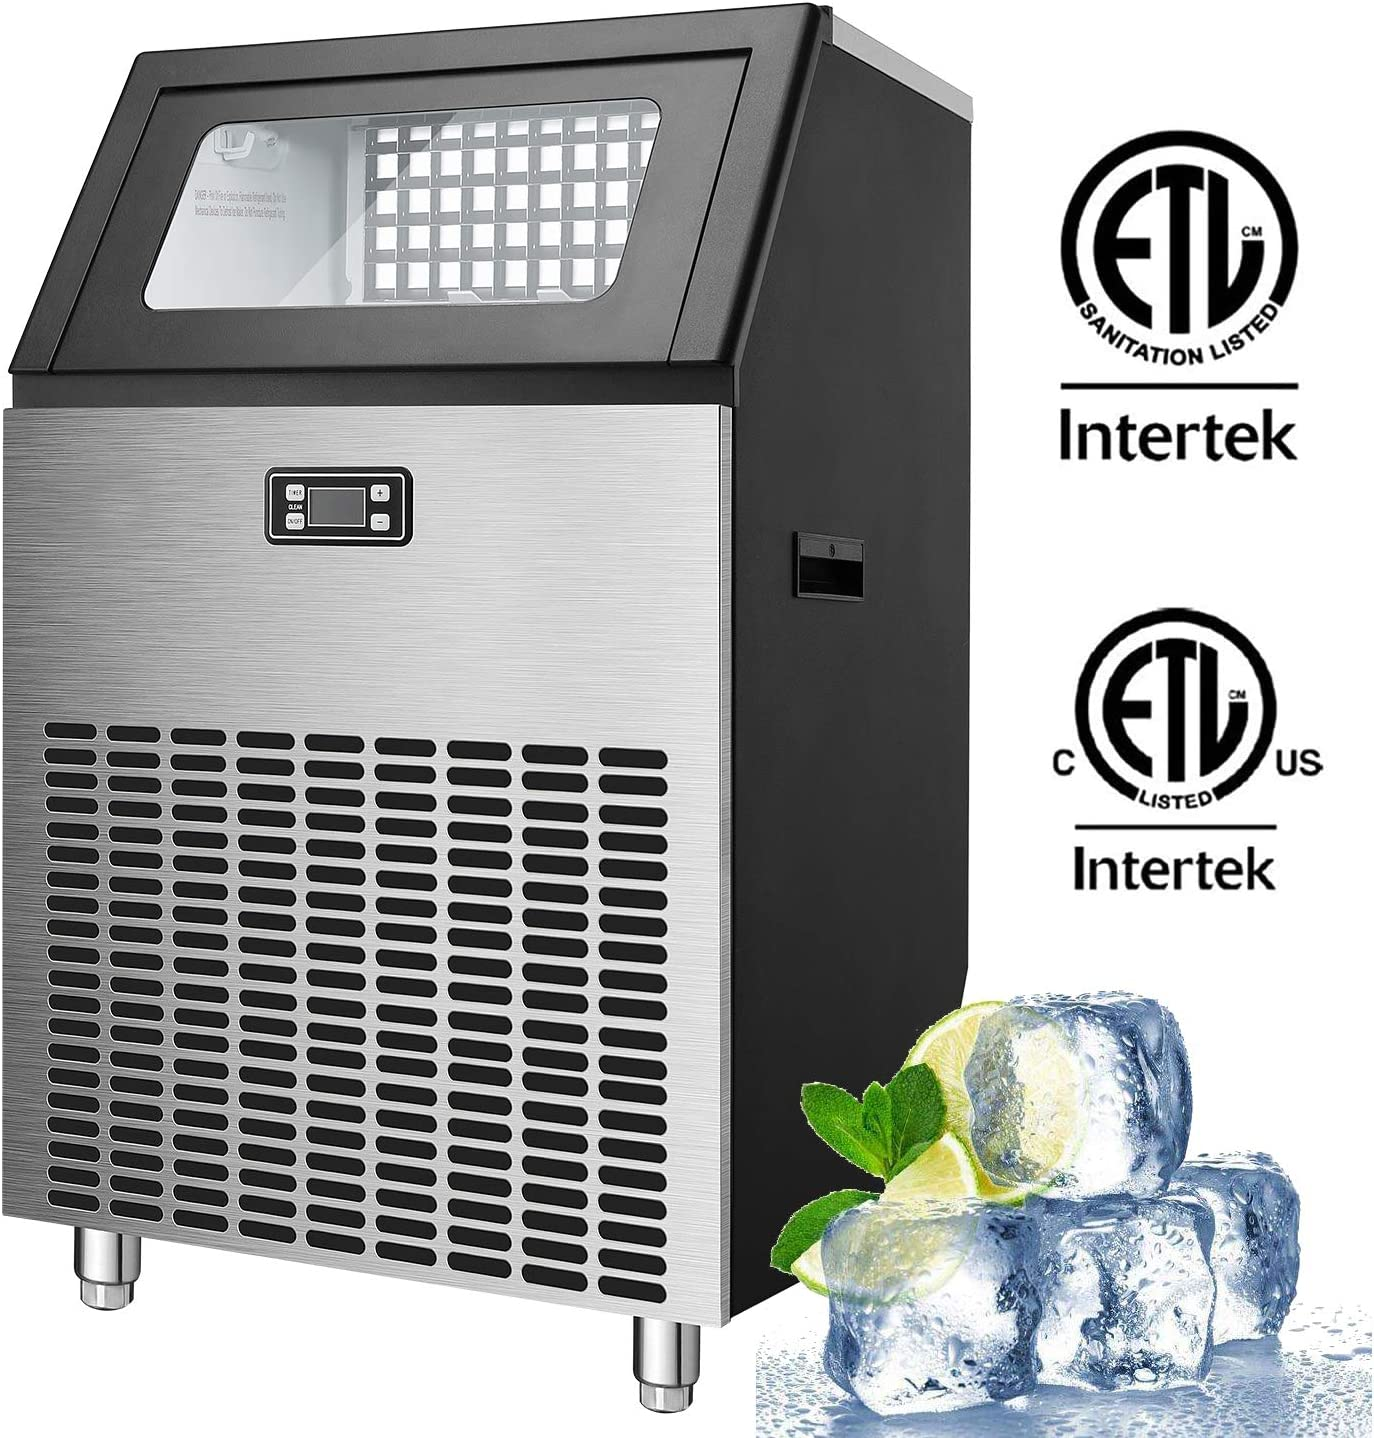 Antarctic Star Commercial Ice Makes Machine Stainless Steel Makes 200 Lbs of Ice Per 24H with 48 Pounds Storage Capacity Ice Cubes Freestanding Party/Bar/Restaurant Scoop Connection Hose Silver